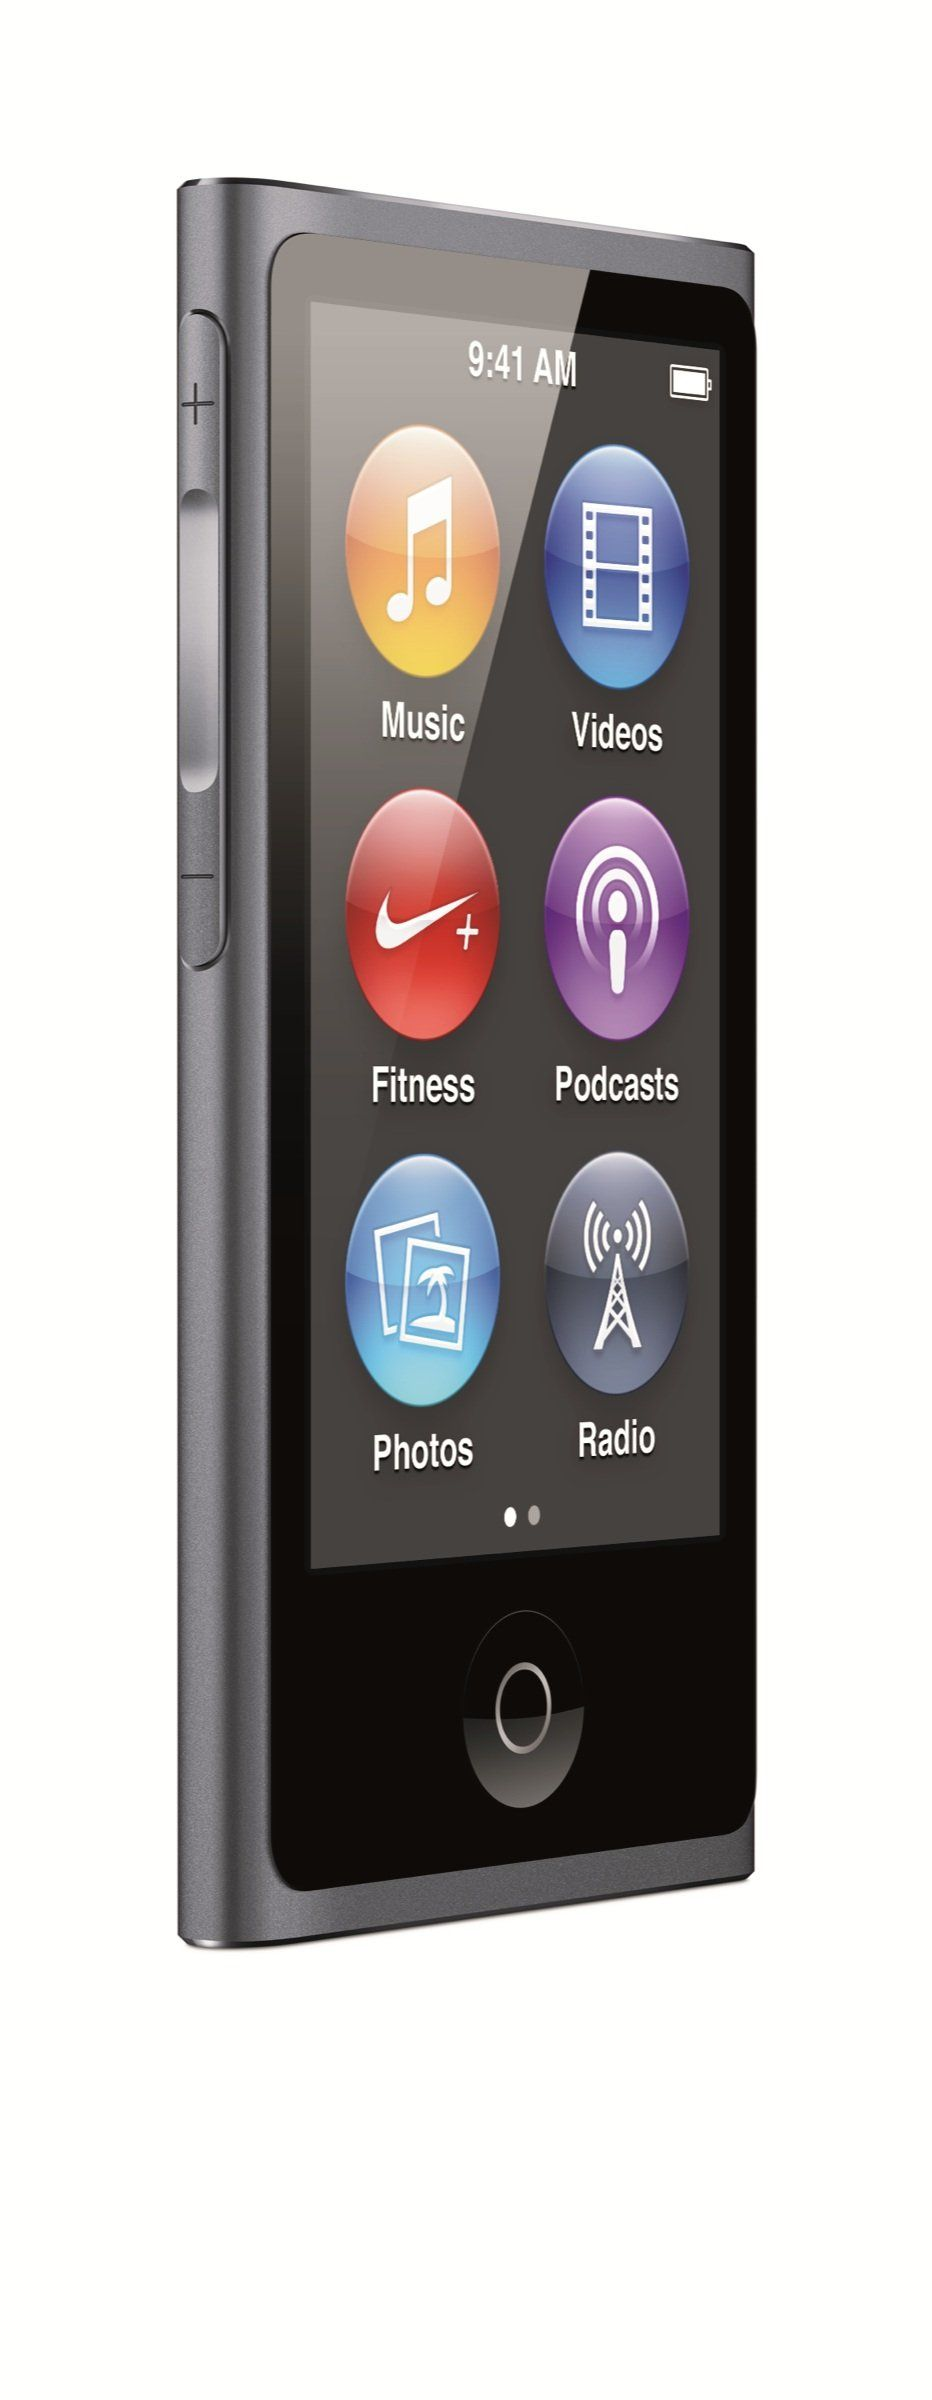 amazoncom apple ipod nano 16 gb red 5th generation - HD 932×2400